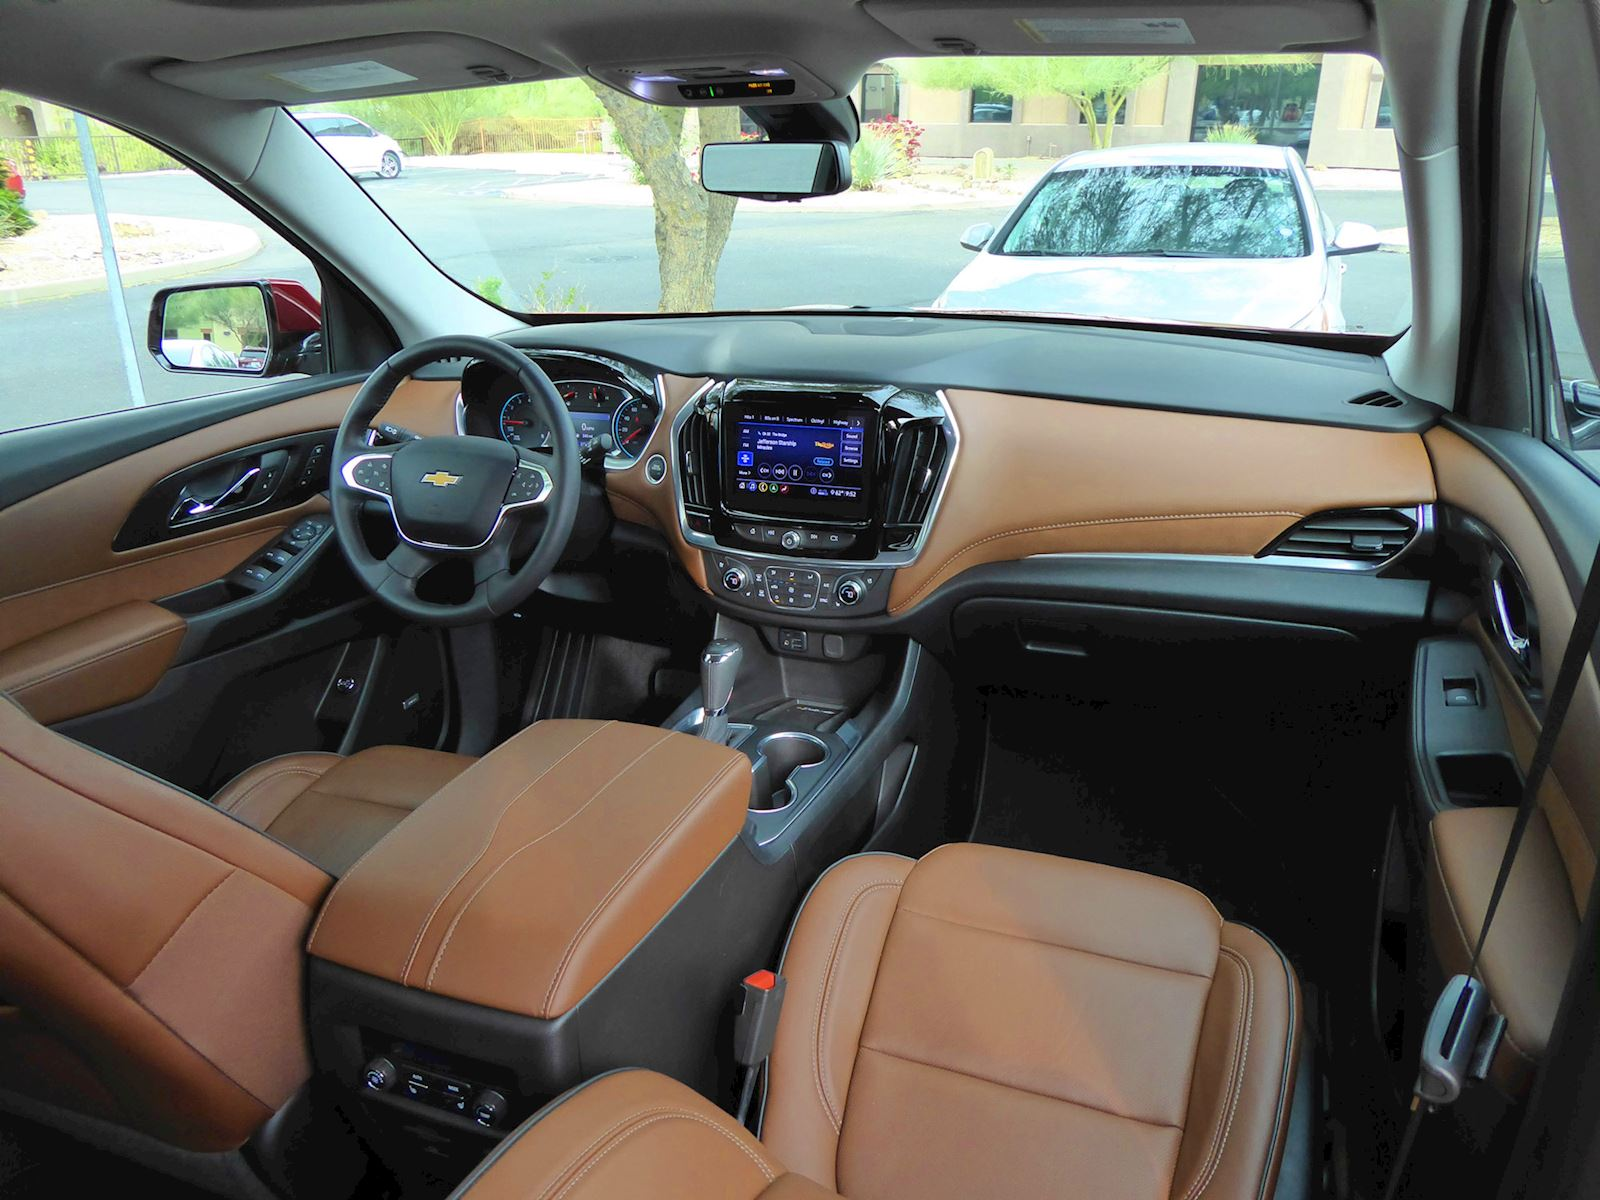 2020 Chevrolet Traverse dash